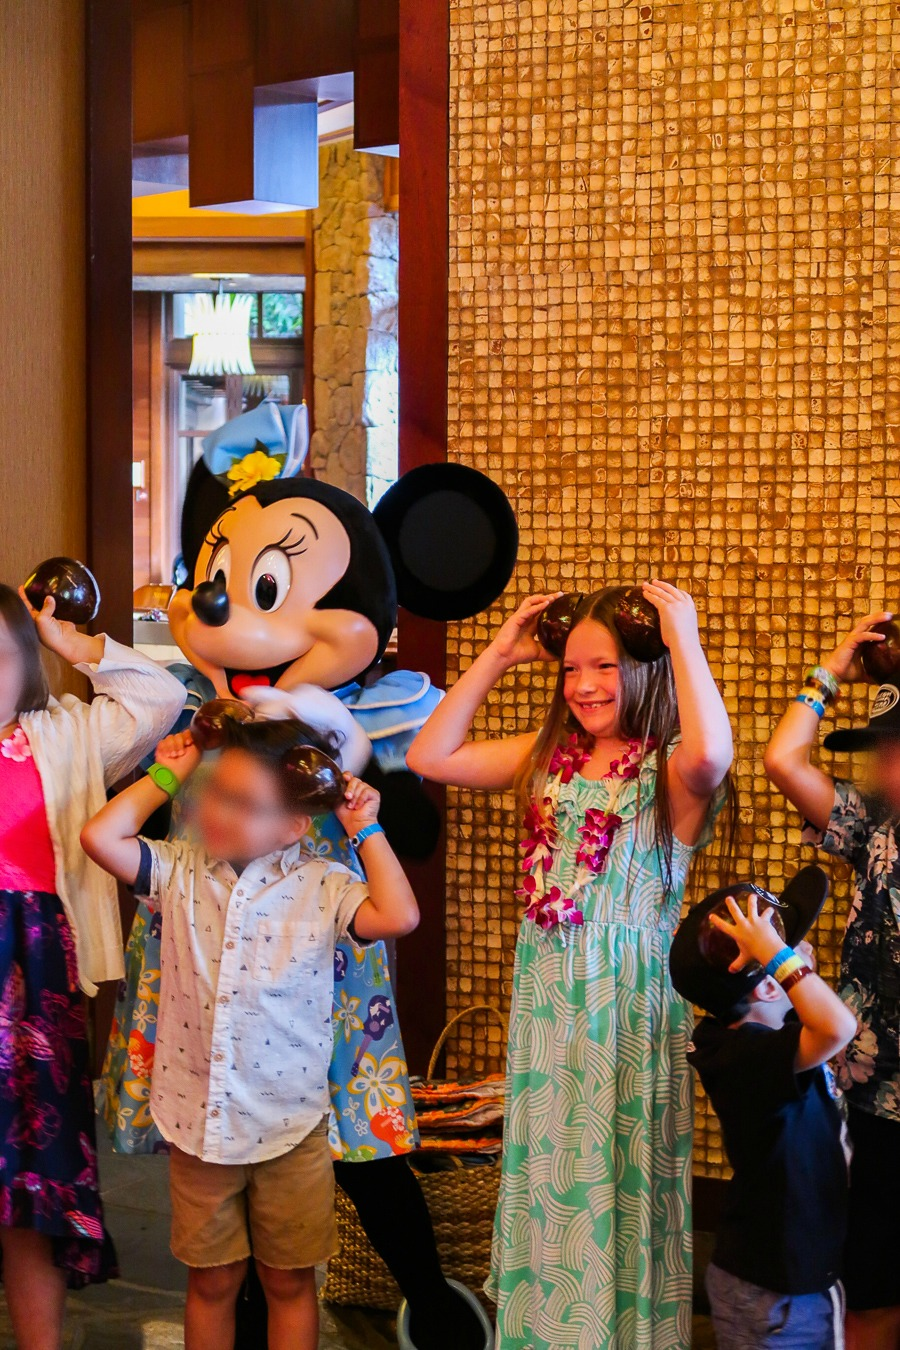 Girl celebrating with Minnie Mouse at Disney's Aulani